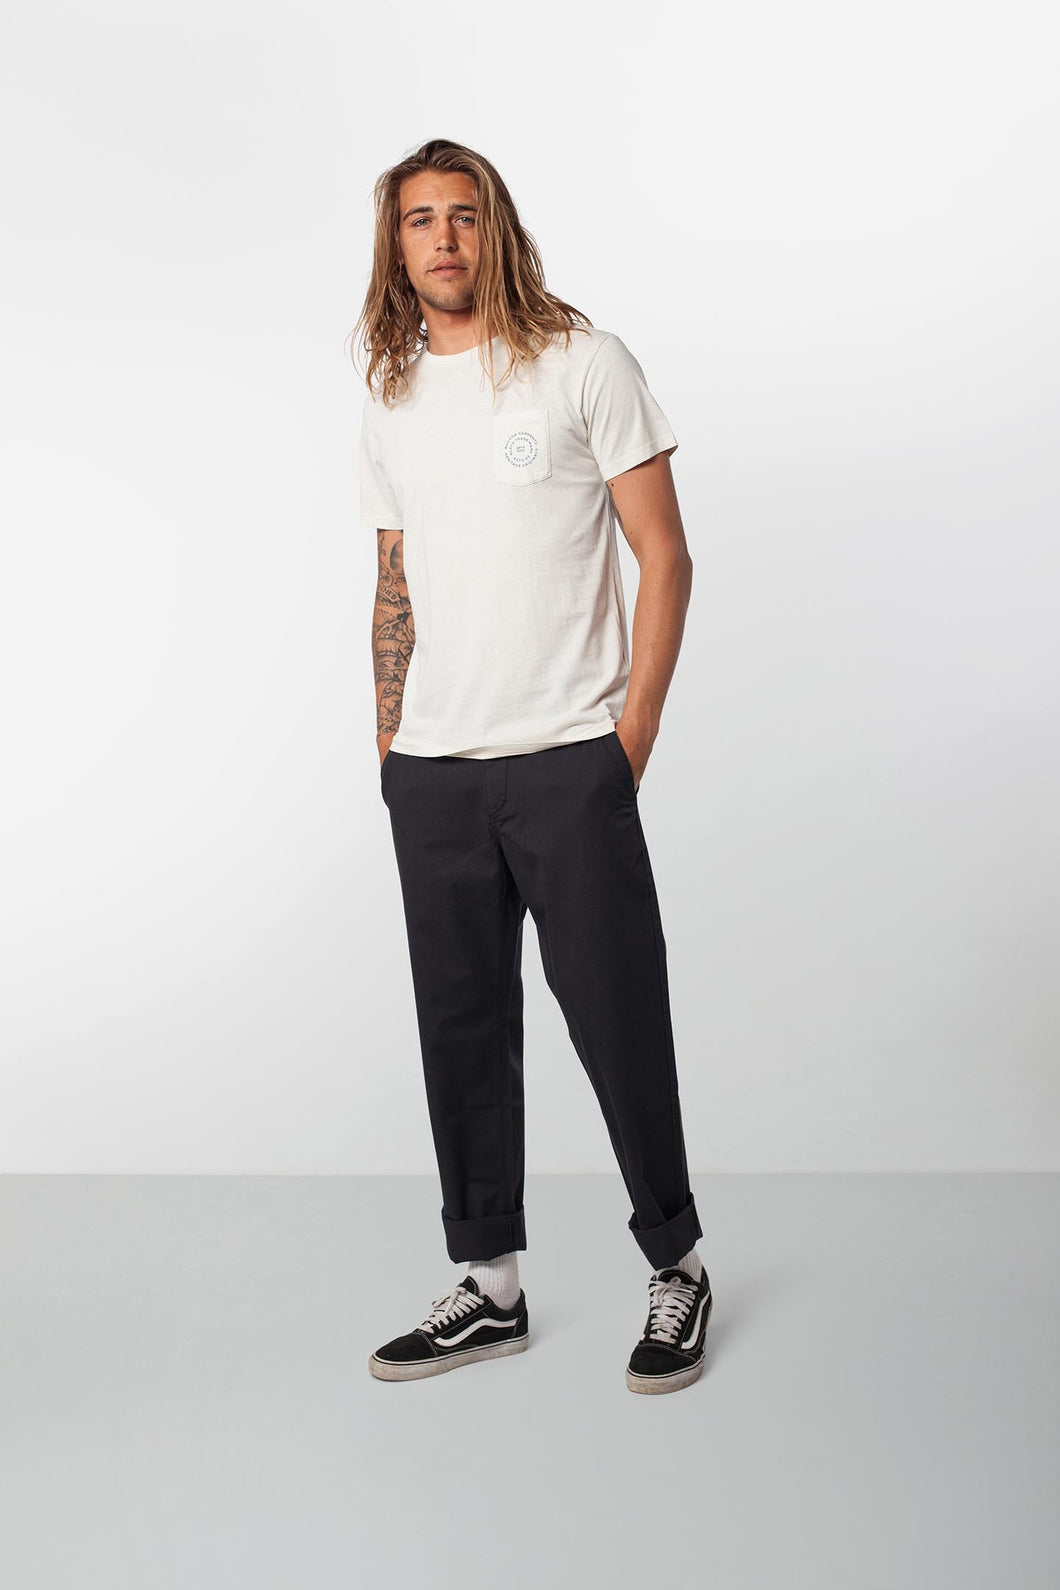 Rhythm Basic Slub Shirt (White)